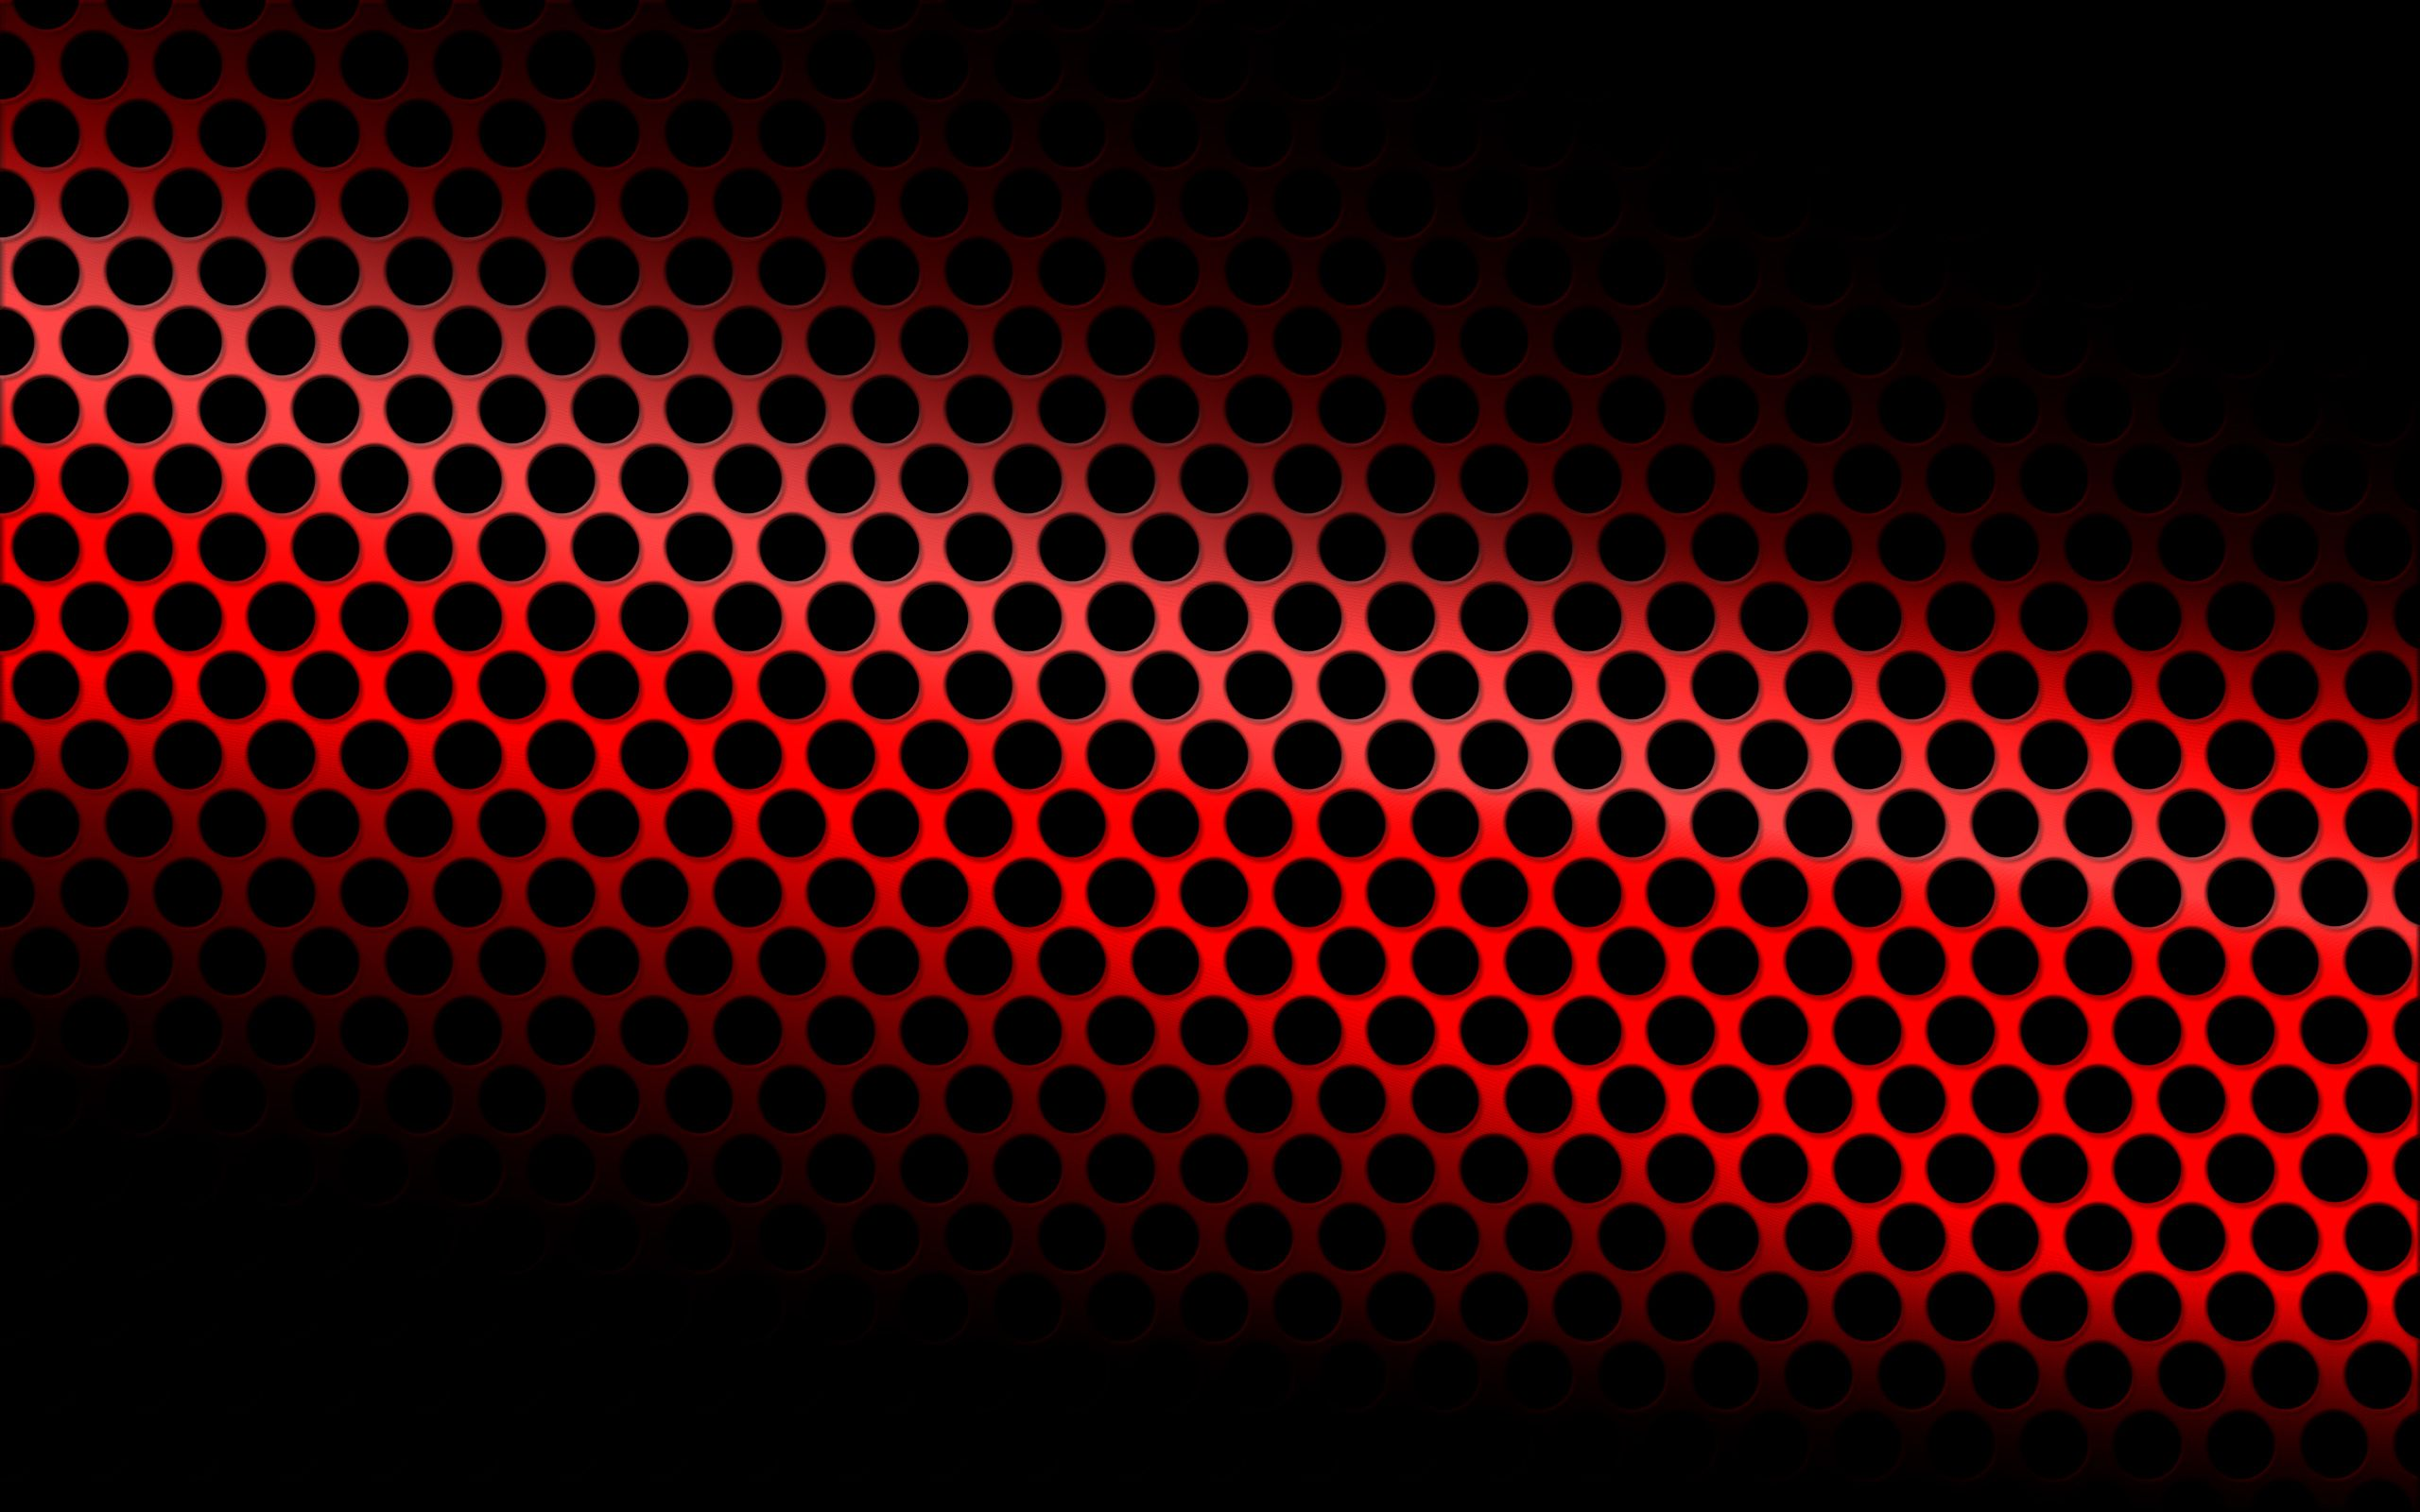 Black And Red Wallpapers Hd Hd Wallpapers Backgrounds Images Red And Black Wallpaper Red Wallpaper Black Background Wallpaper